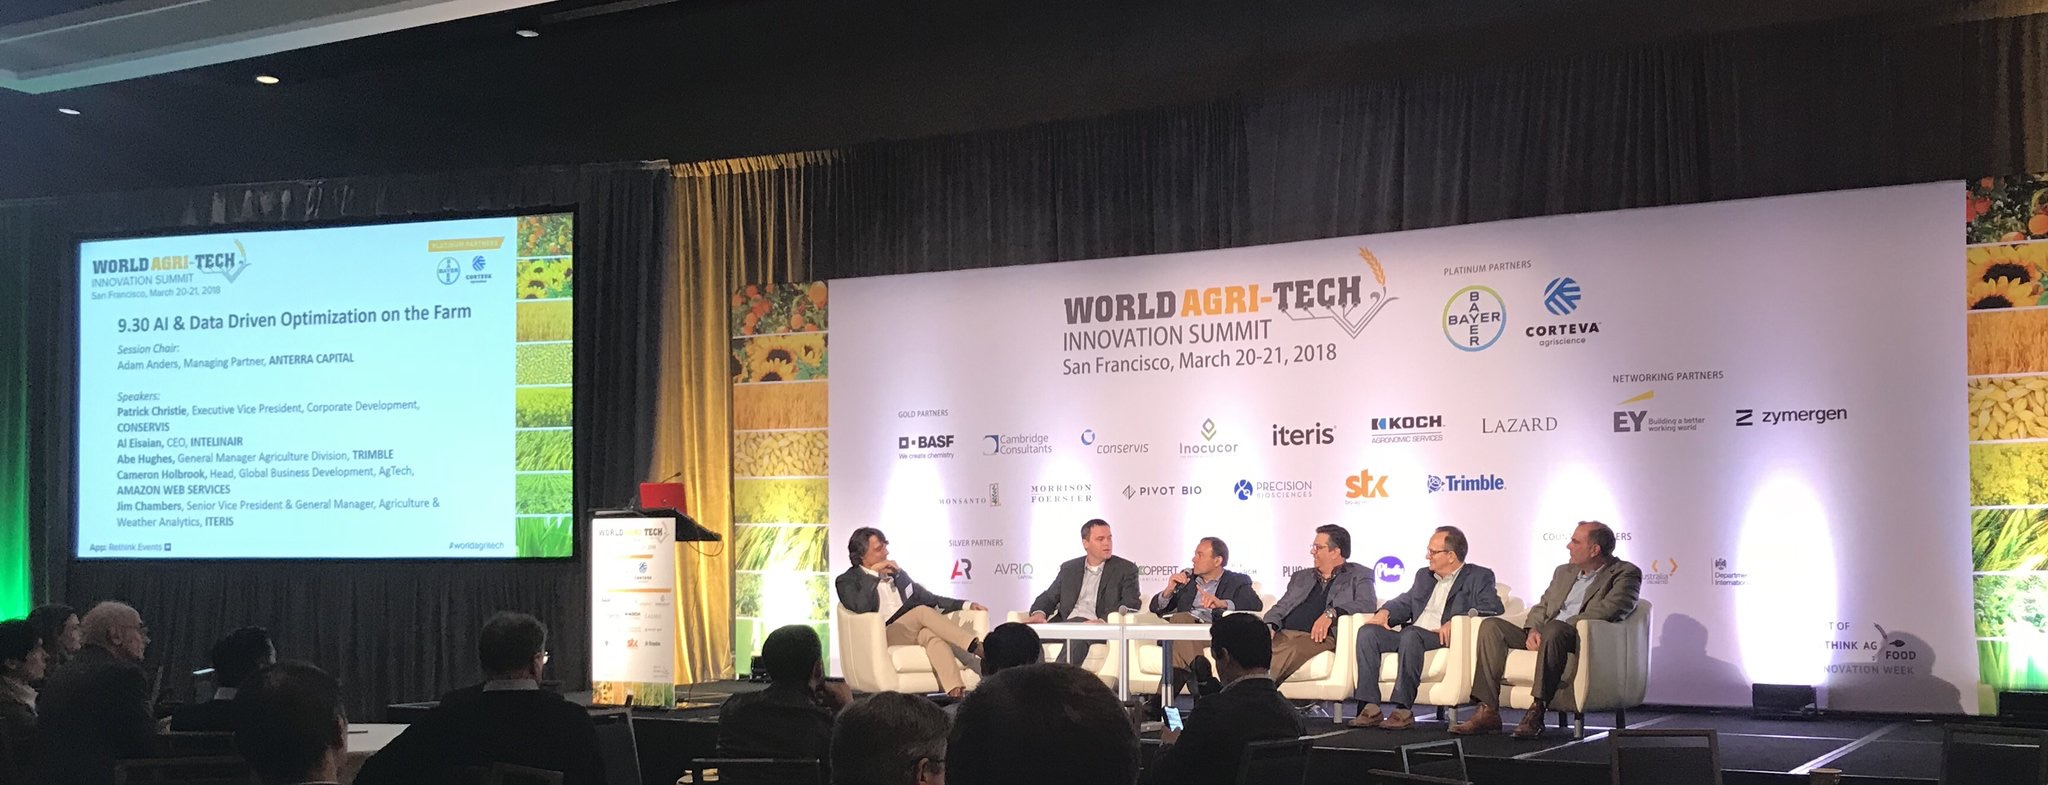 Abe Hughes World Agri-Tech Panel